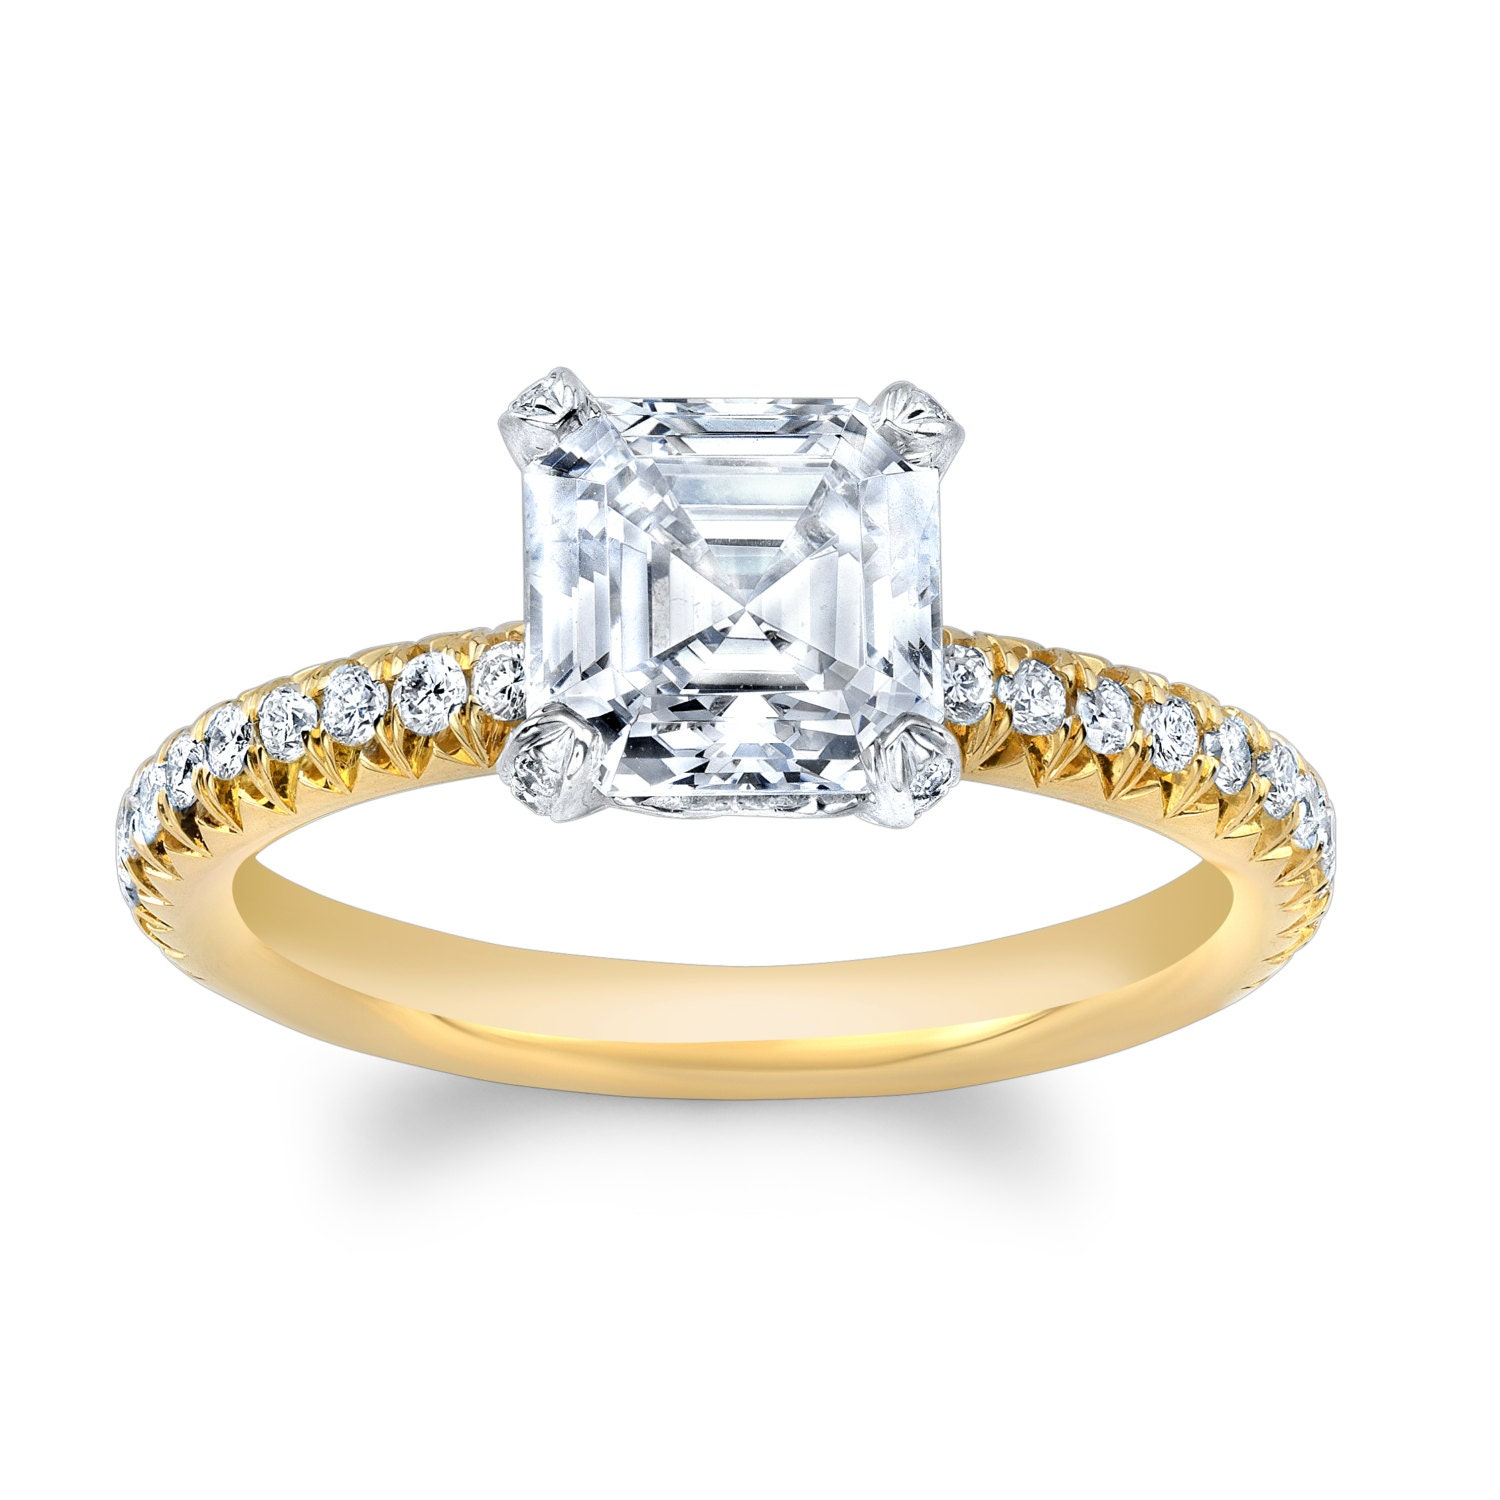 La s 14kt two tone engagement ring with 2 ct Asscher Cut